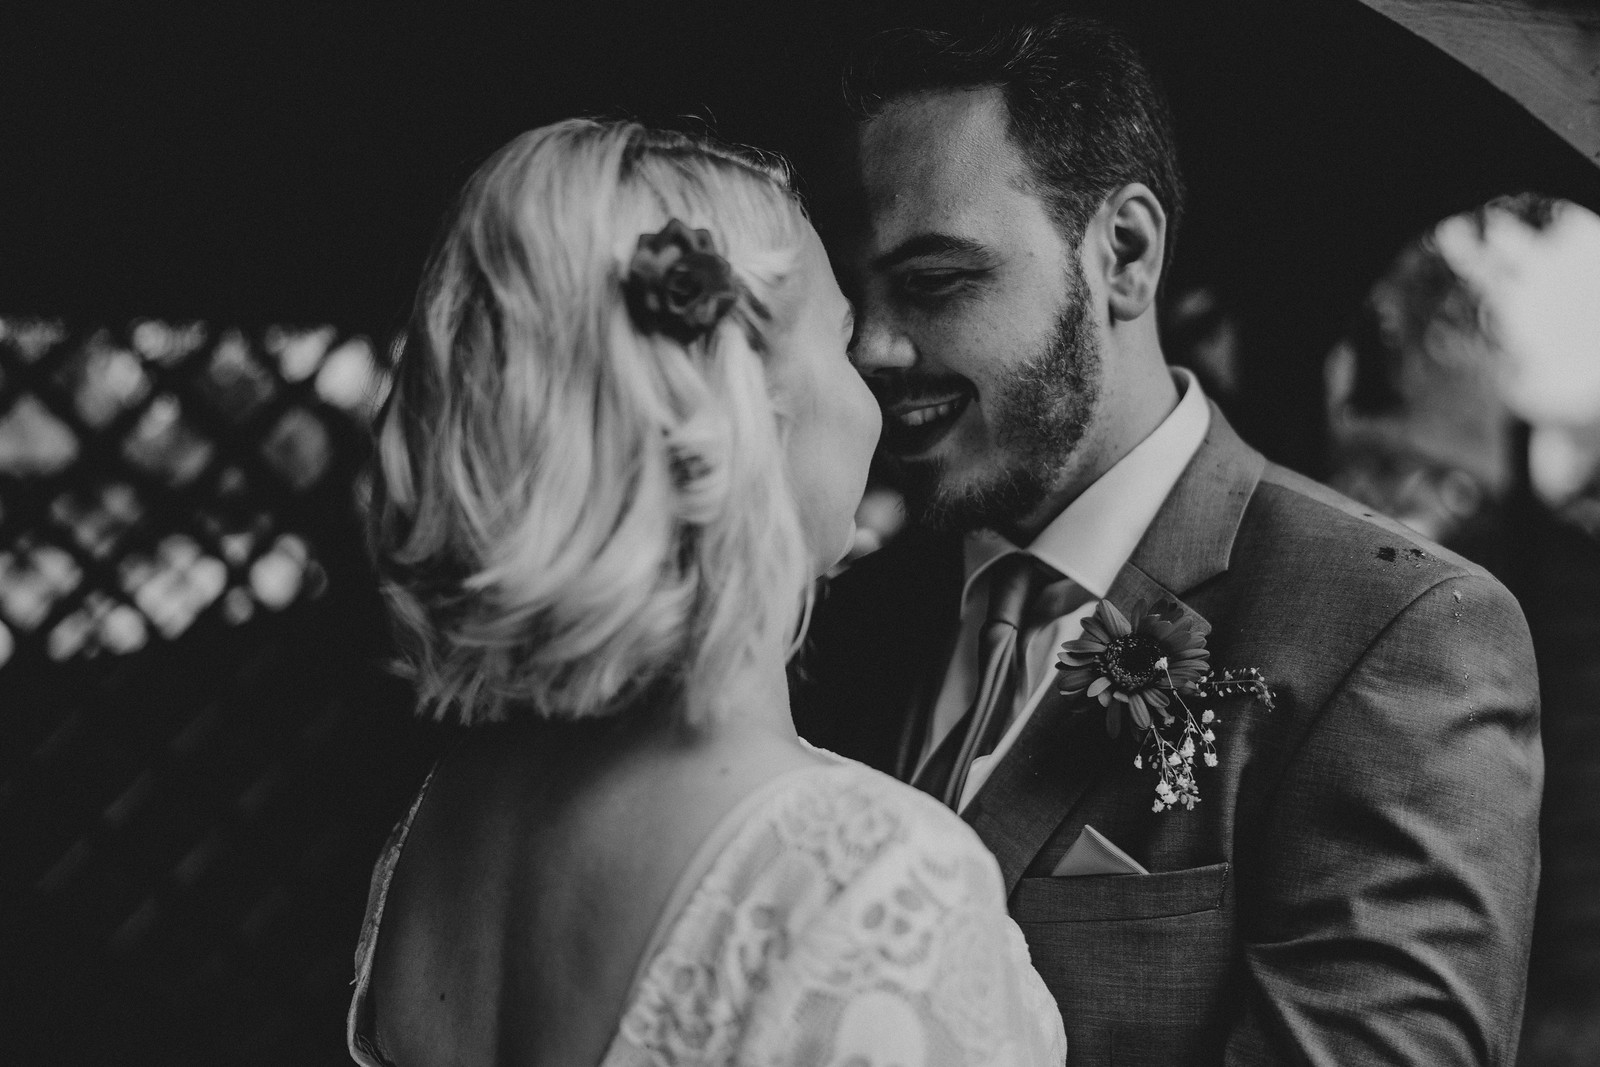 Close up of bride and groom, full of smiles